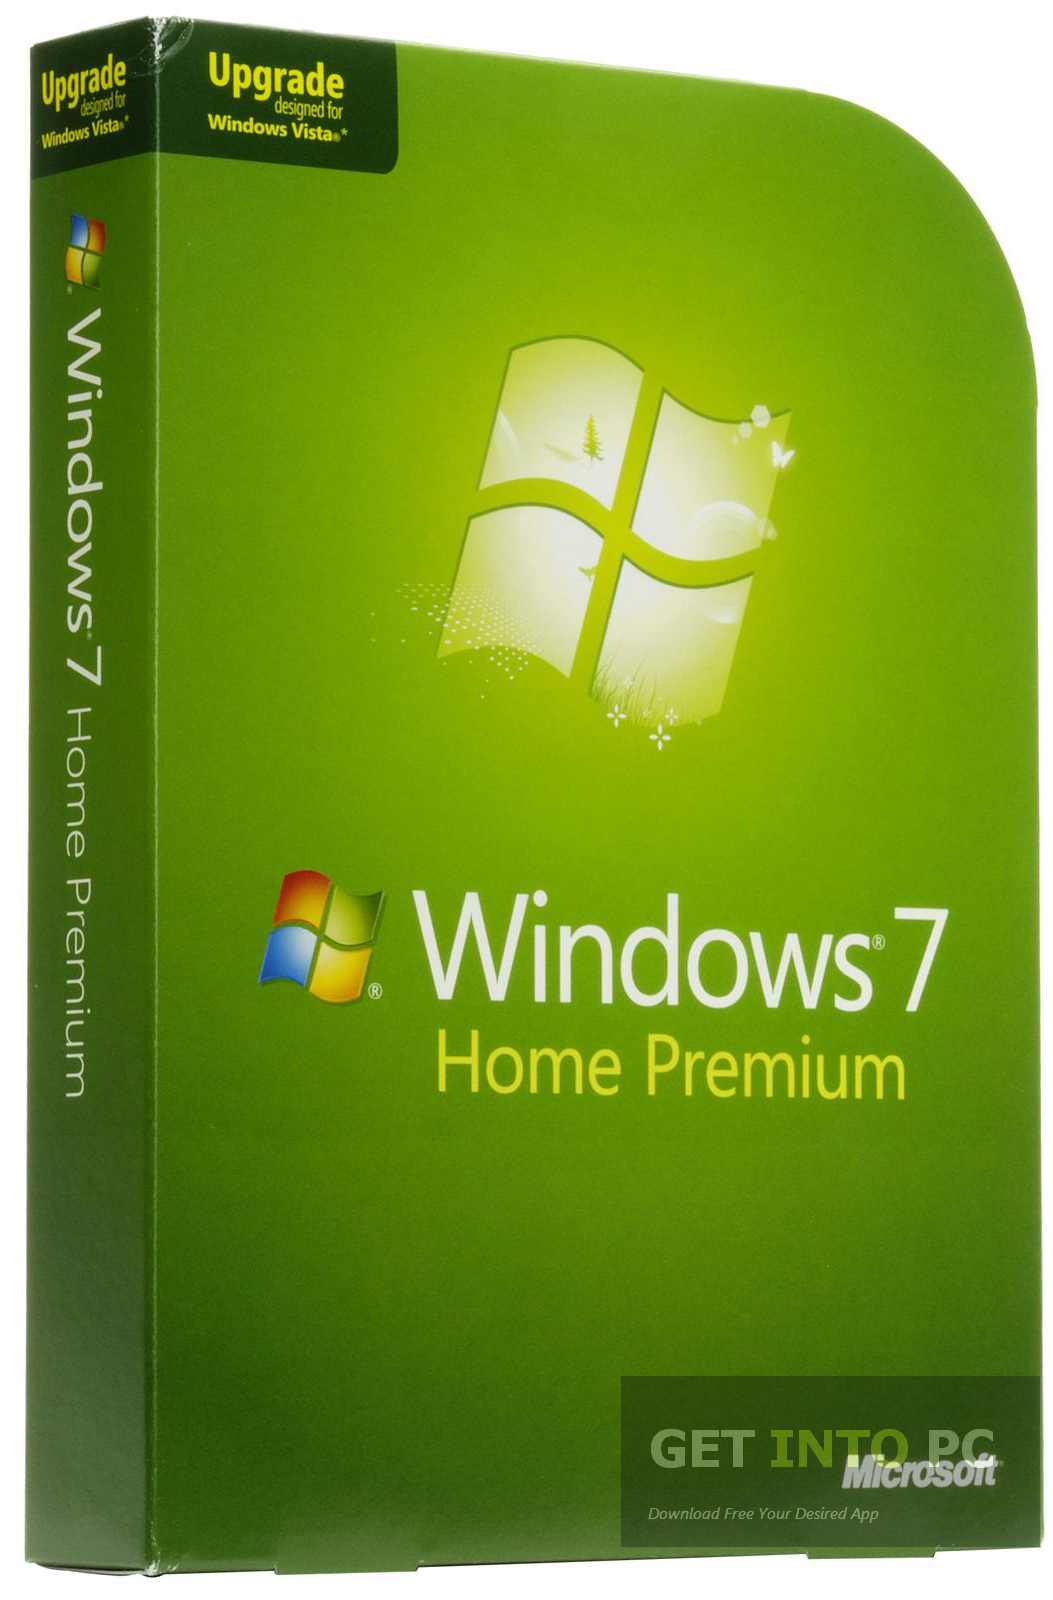 windows 7 home premium 64 bit free download from microsoft